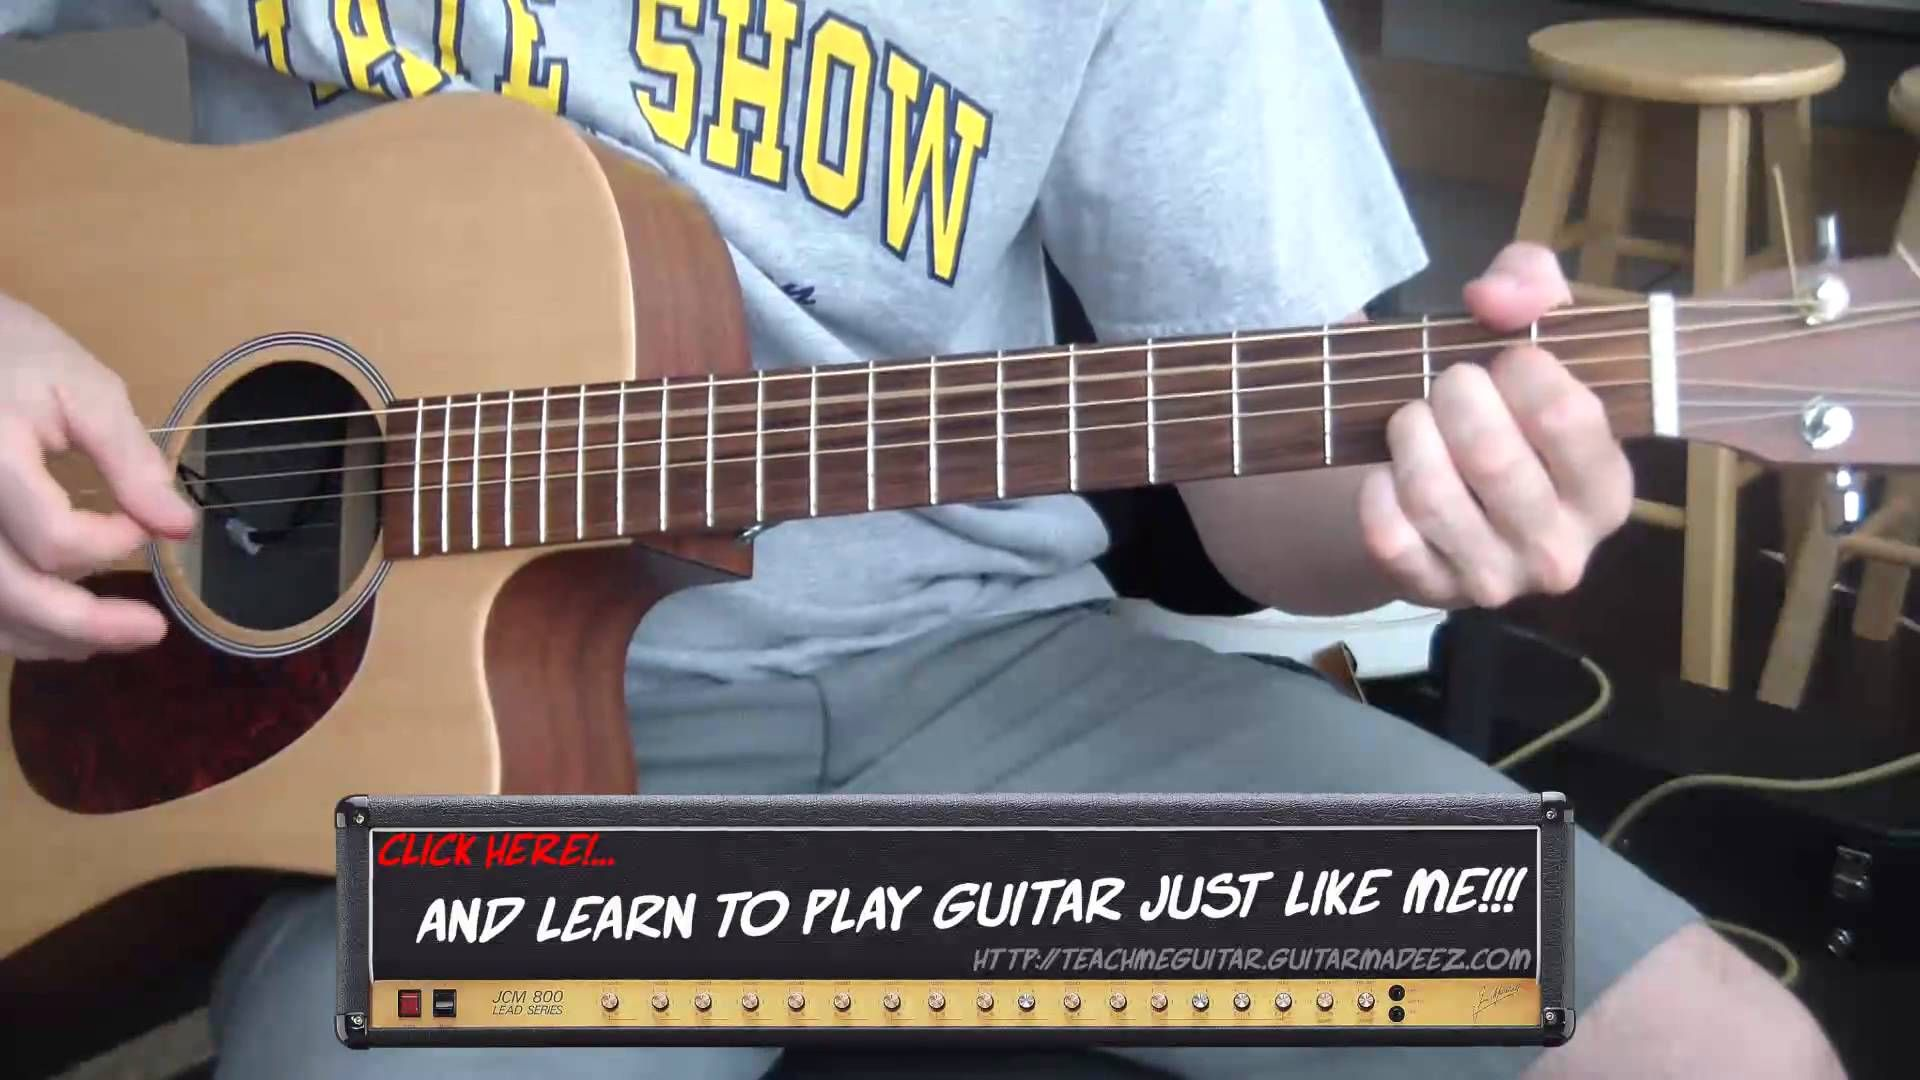 Pin On Guitarmadeez Com Guitar Lessons